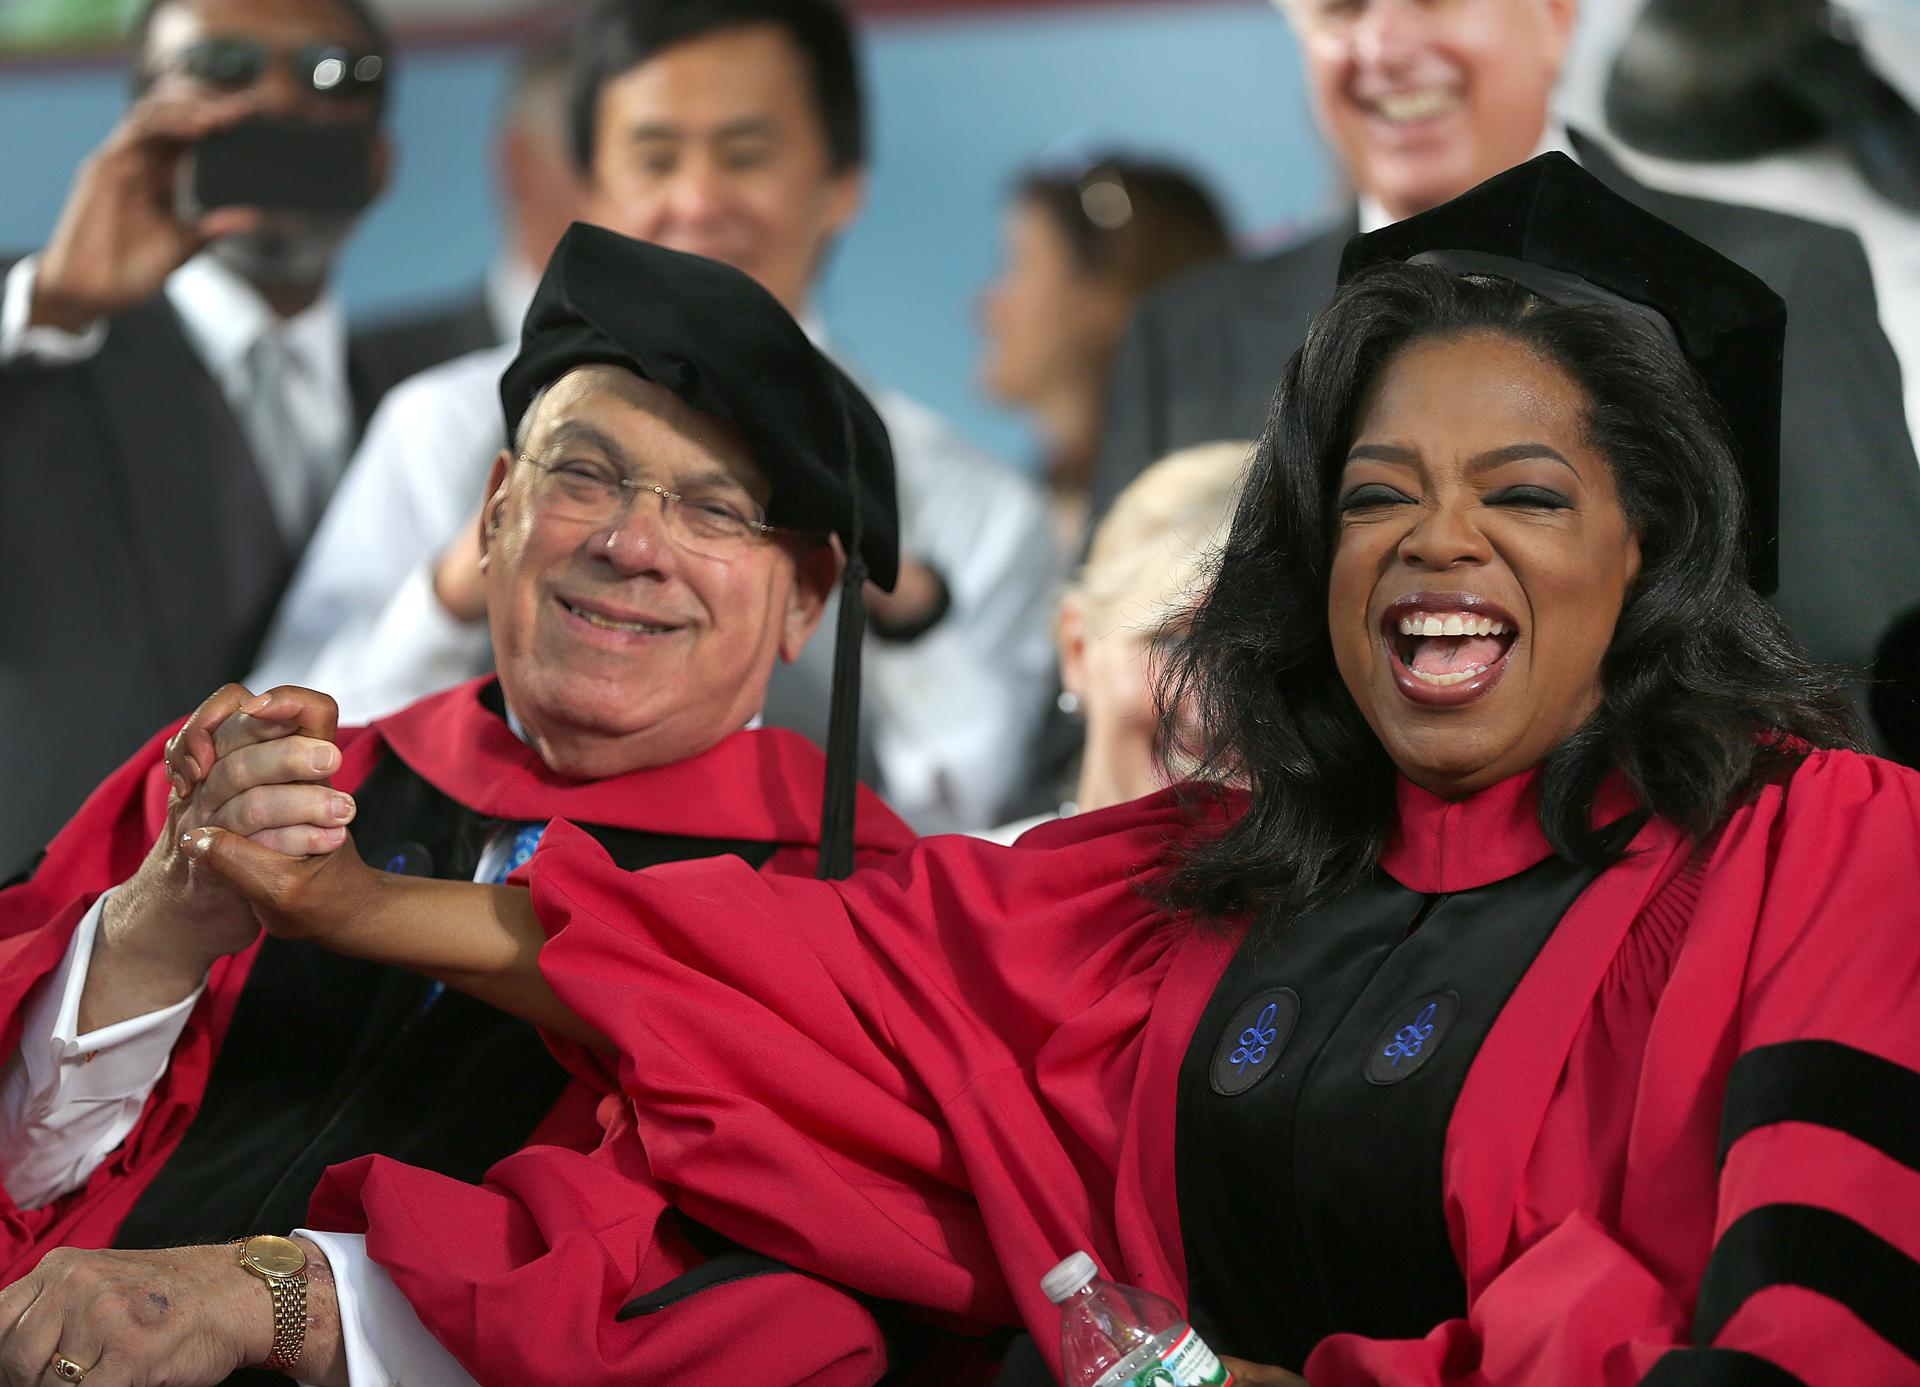 Thomas Menino sat with Oprah Winfrey at Harvard's graduation ceremony, where both recevied honorary doctorates.